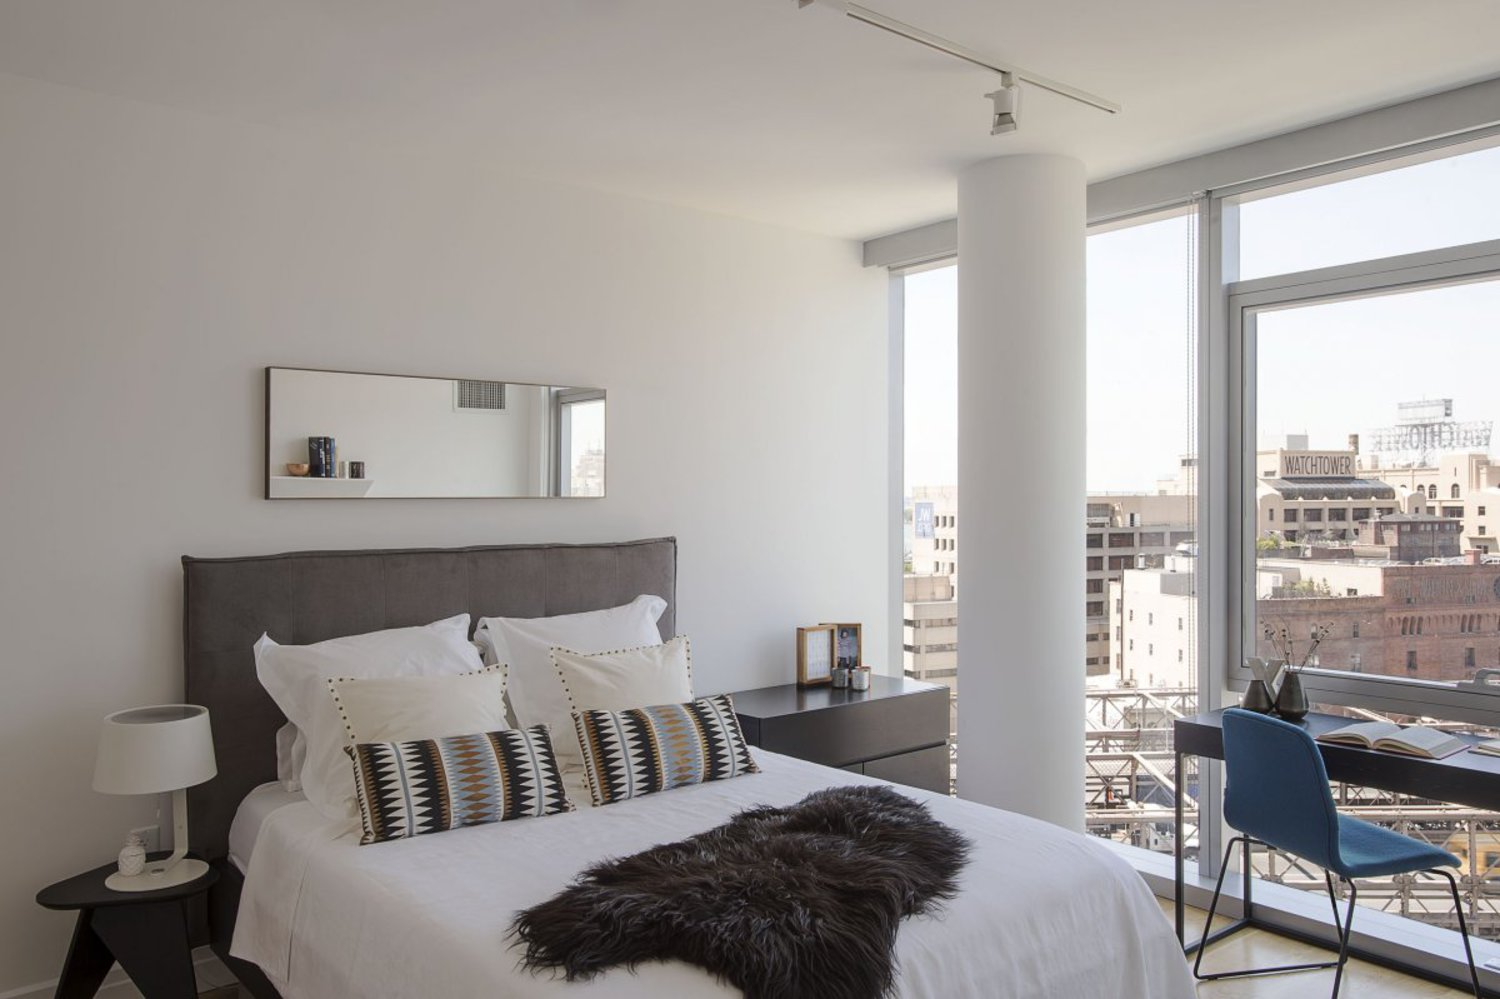 A one-bedroom unit like this might start at $3,498 a month, but monthly rent could go much higher depending on the view.